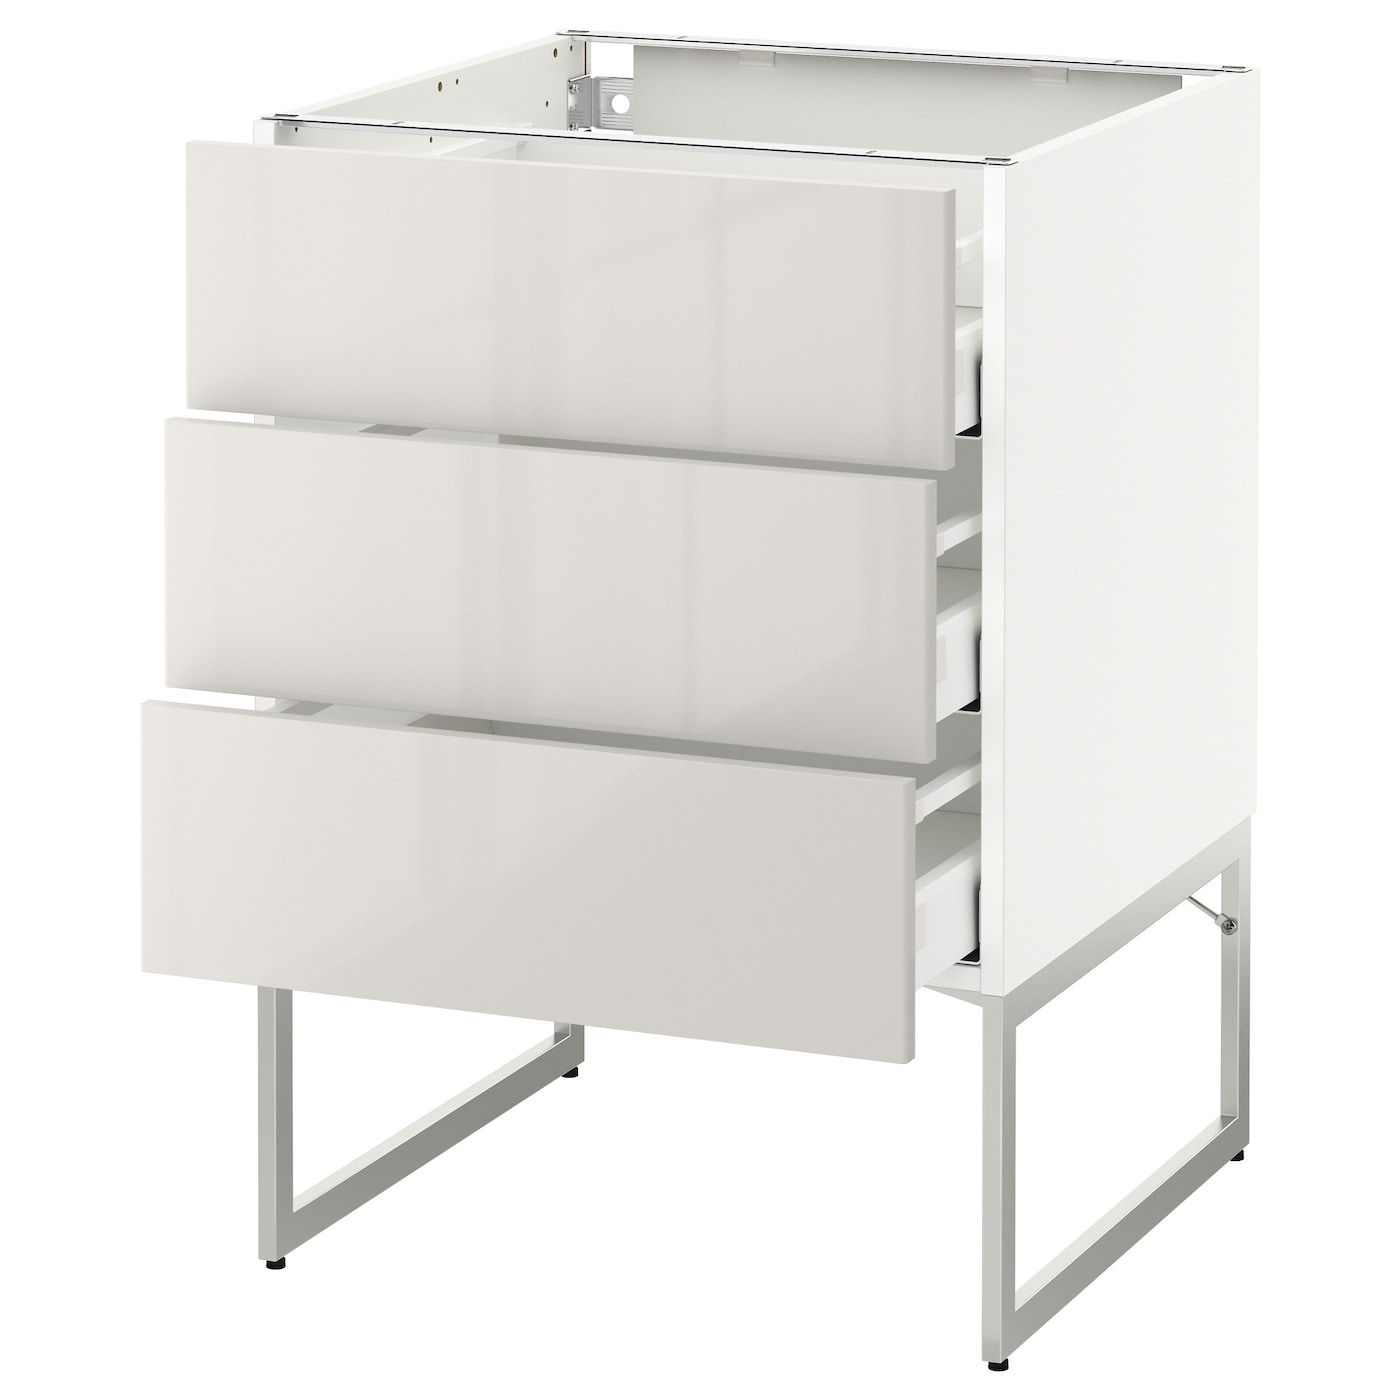 IKEA METOD/MAXIMERA base cab 3 fronts/3 medium drawers Smooth-running drawers with stop.